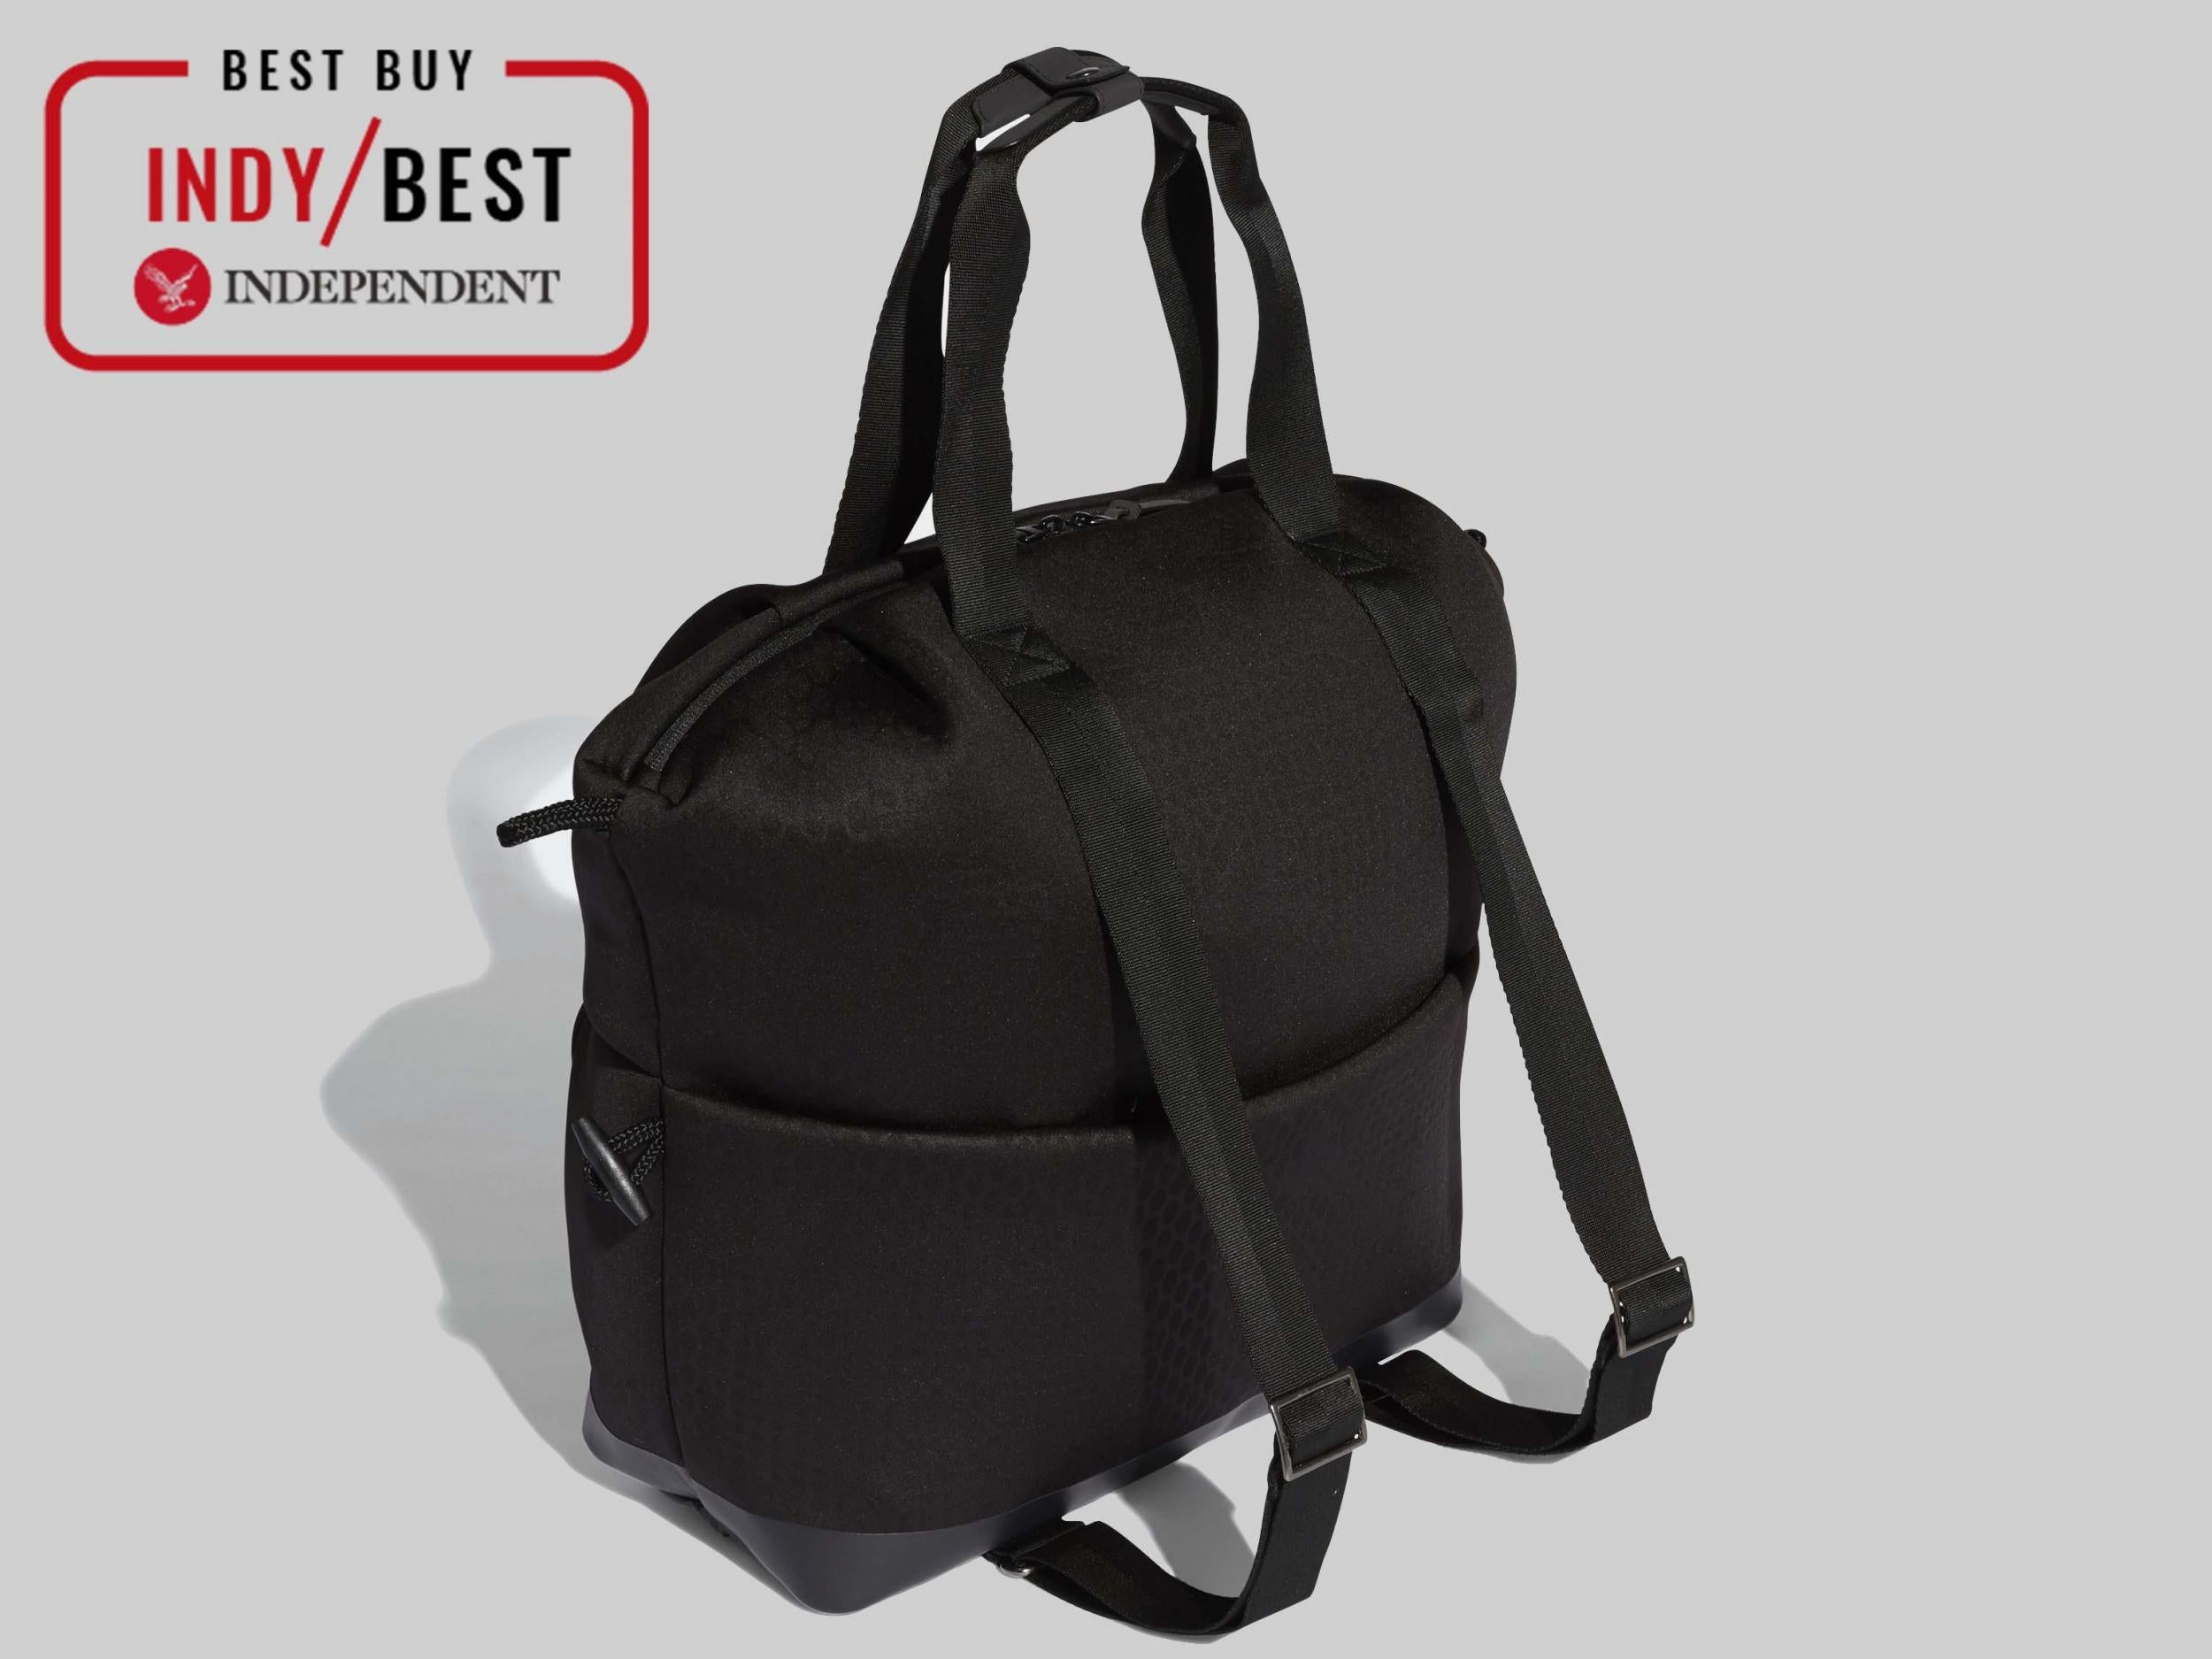 c38153fa58a 11 best gym bags for women | The Independent